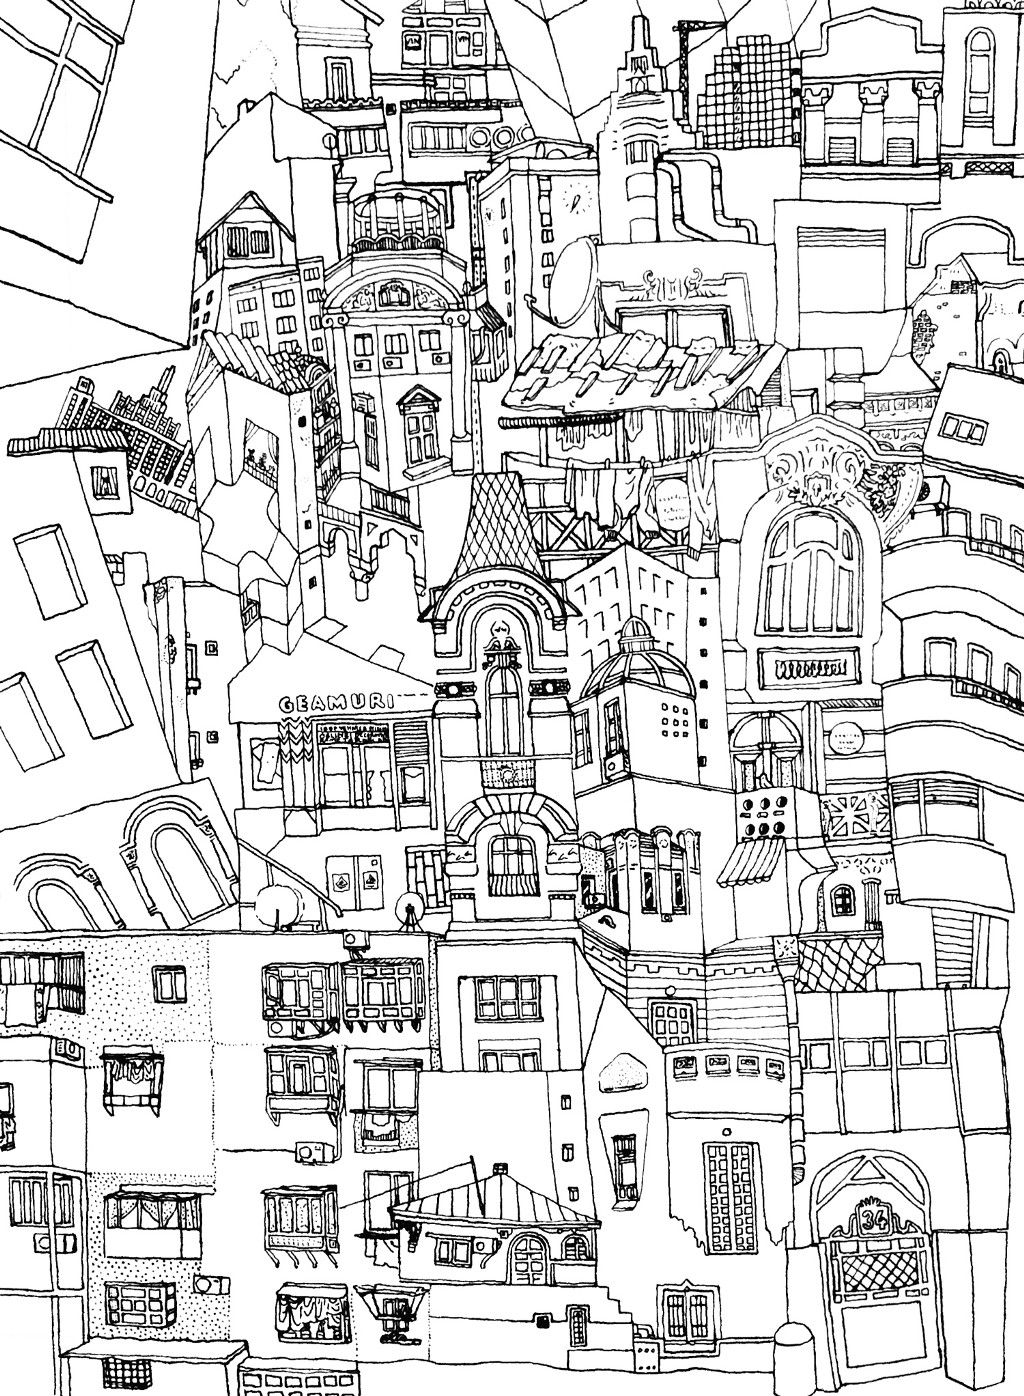 W Earthquake Dotted Drawings Online Coloring Pages Computer Drawing